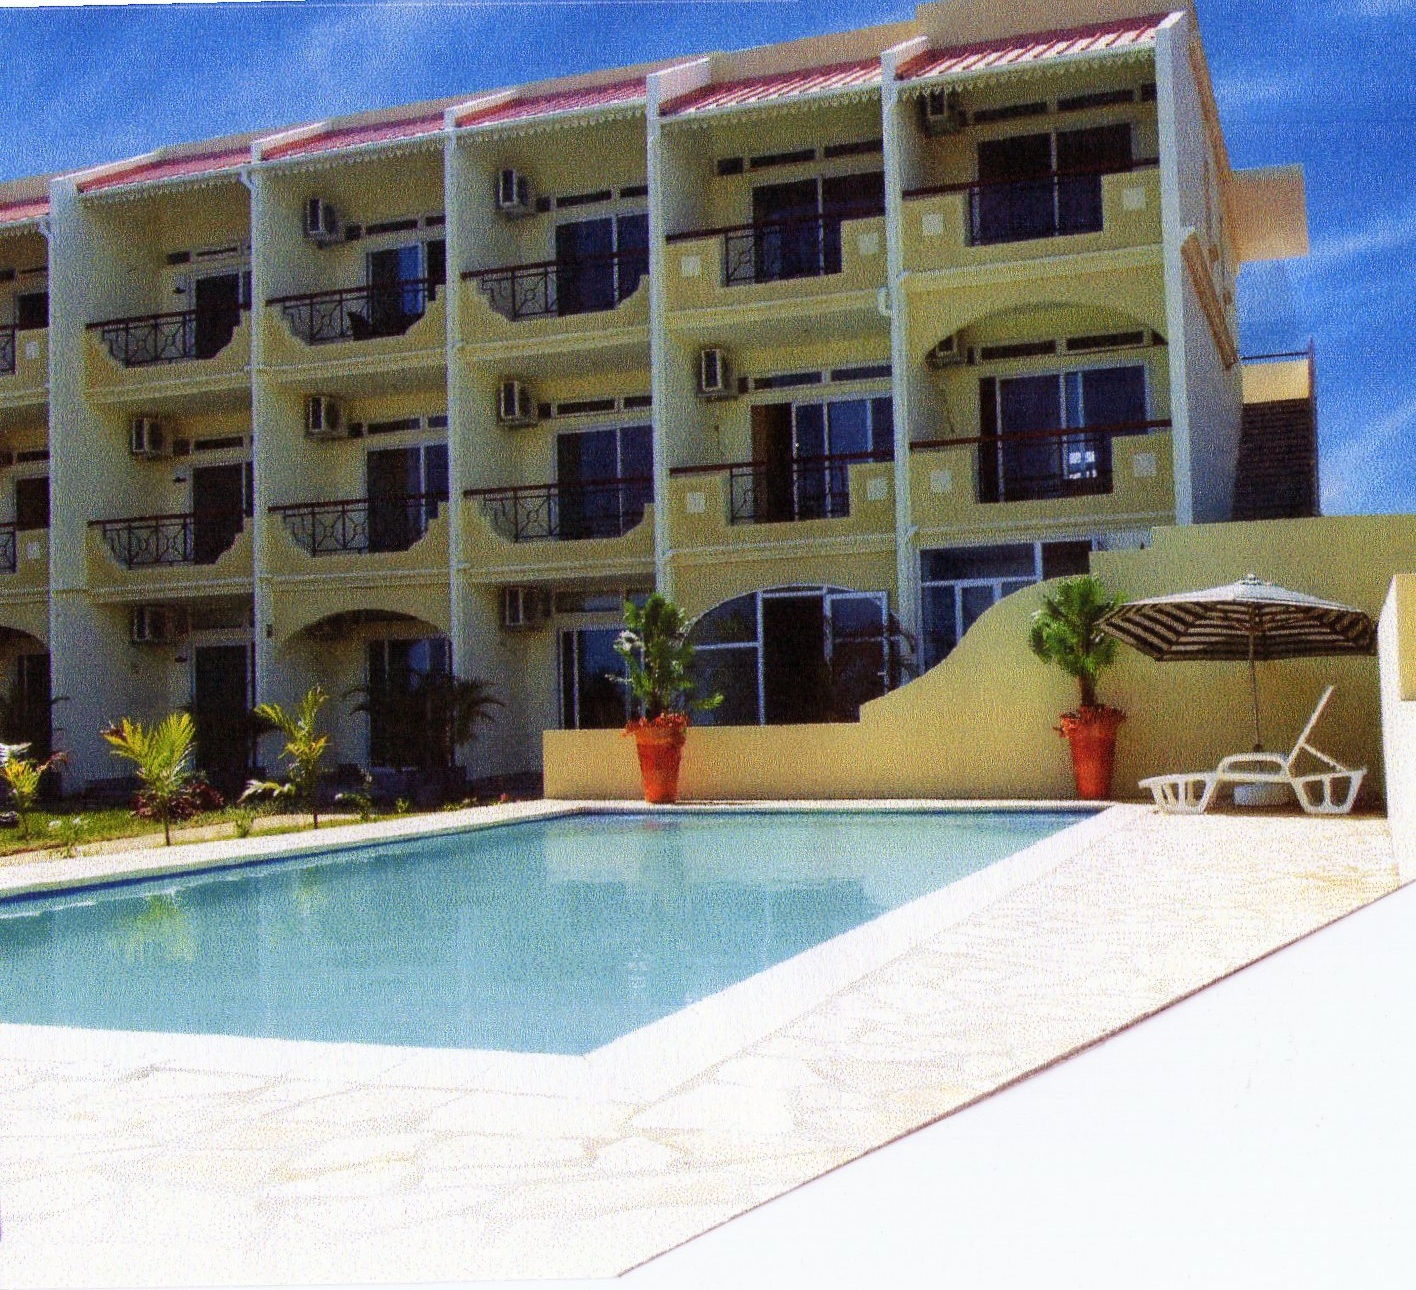 Cheapest Apartments: Anitas Affordable Apartments